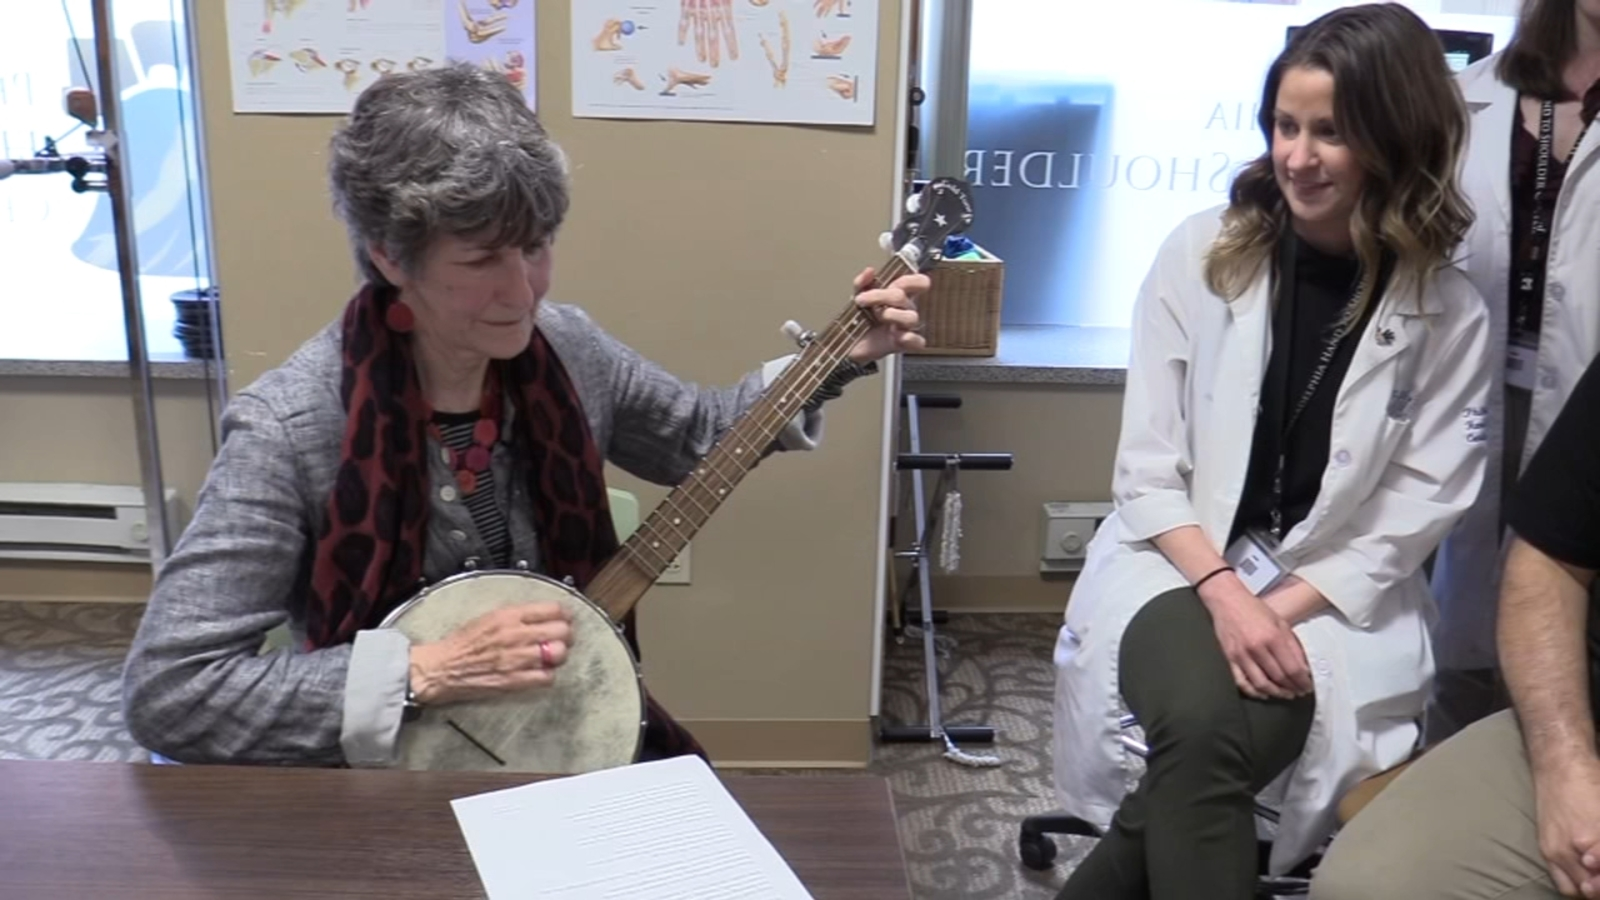 Center City woman writes song, plays banjo to thank doctors who helped her